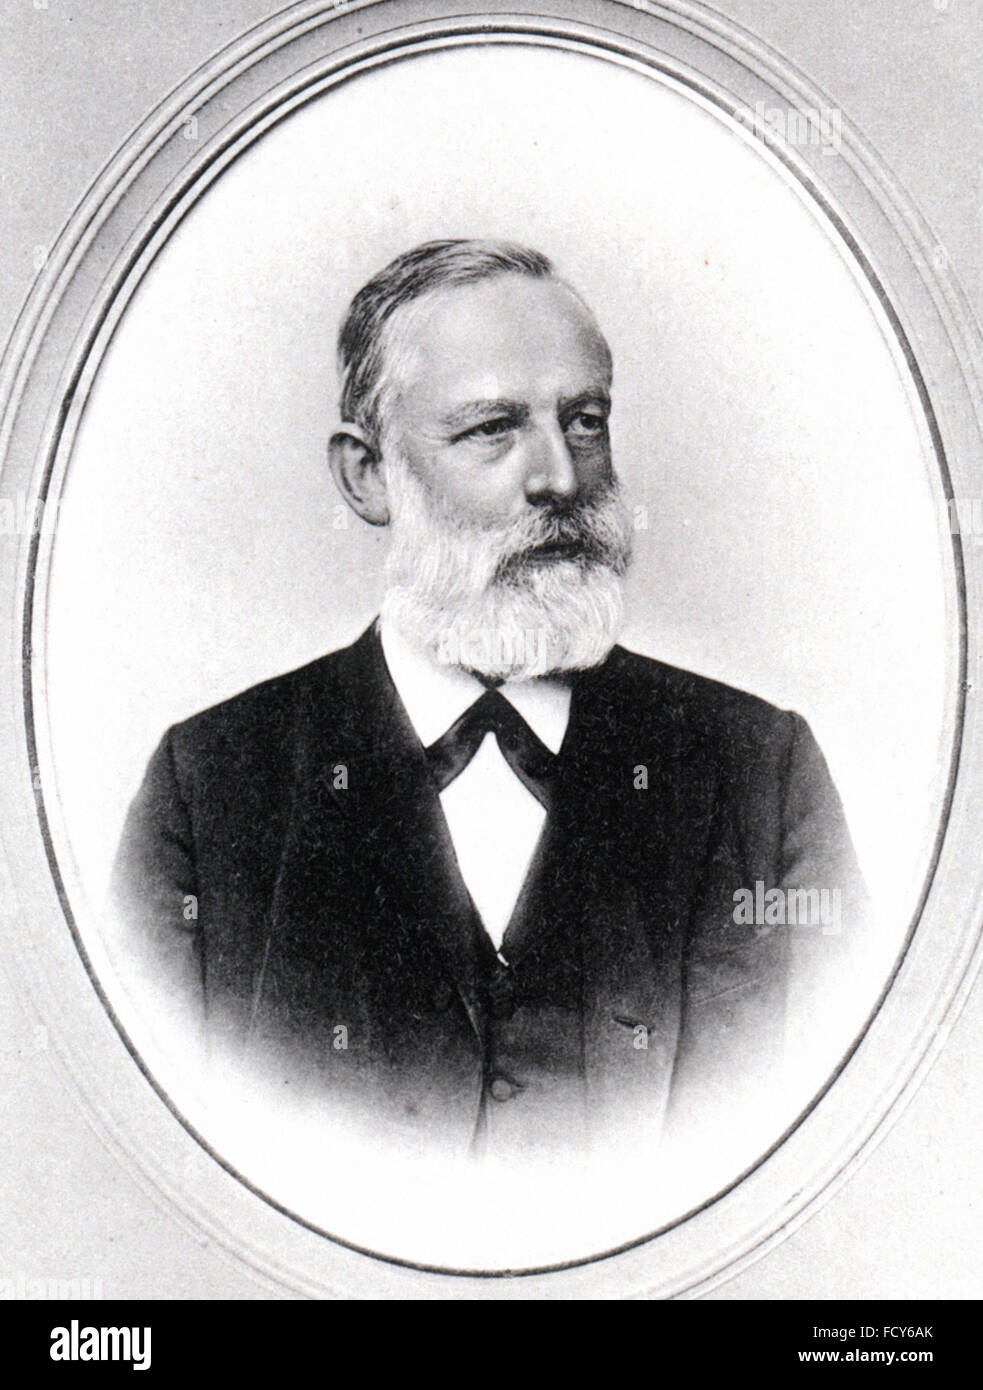 portrait of lothar meyer 1830 1895 chemist - Stock Image